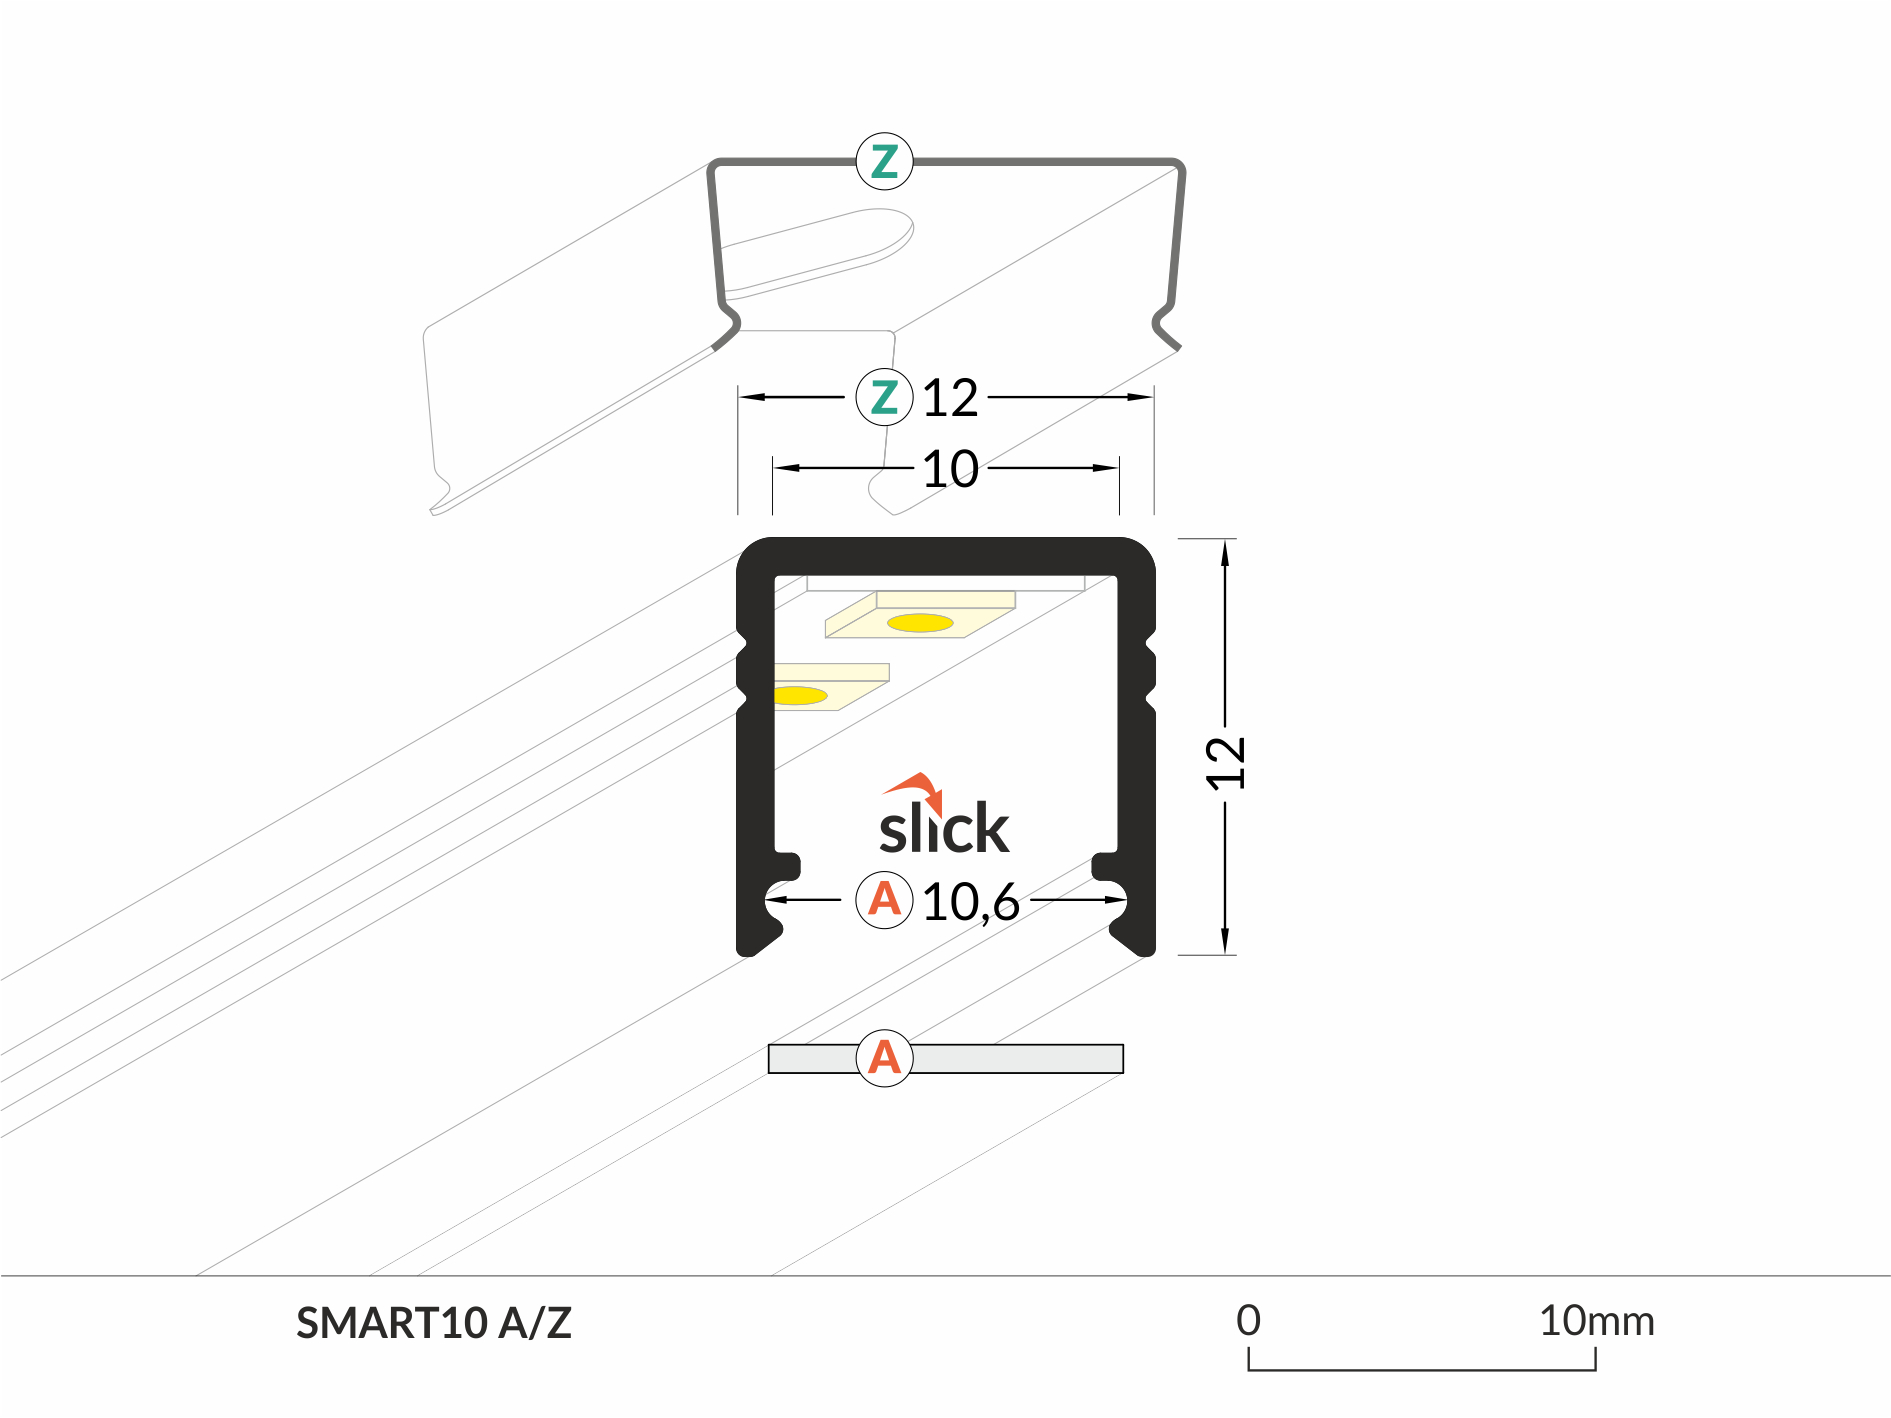 LED_profile_SMART10_dimensions.jpg